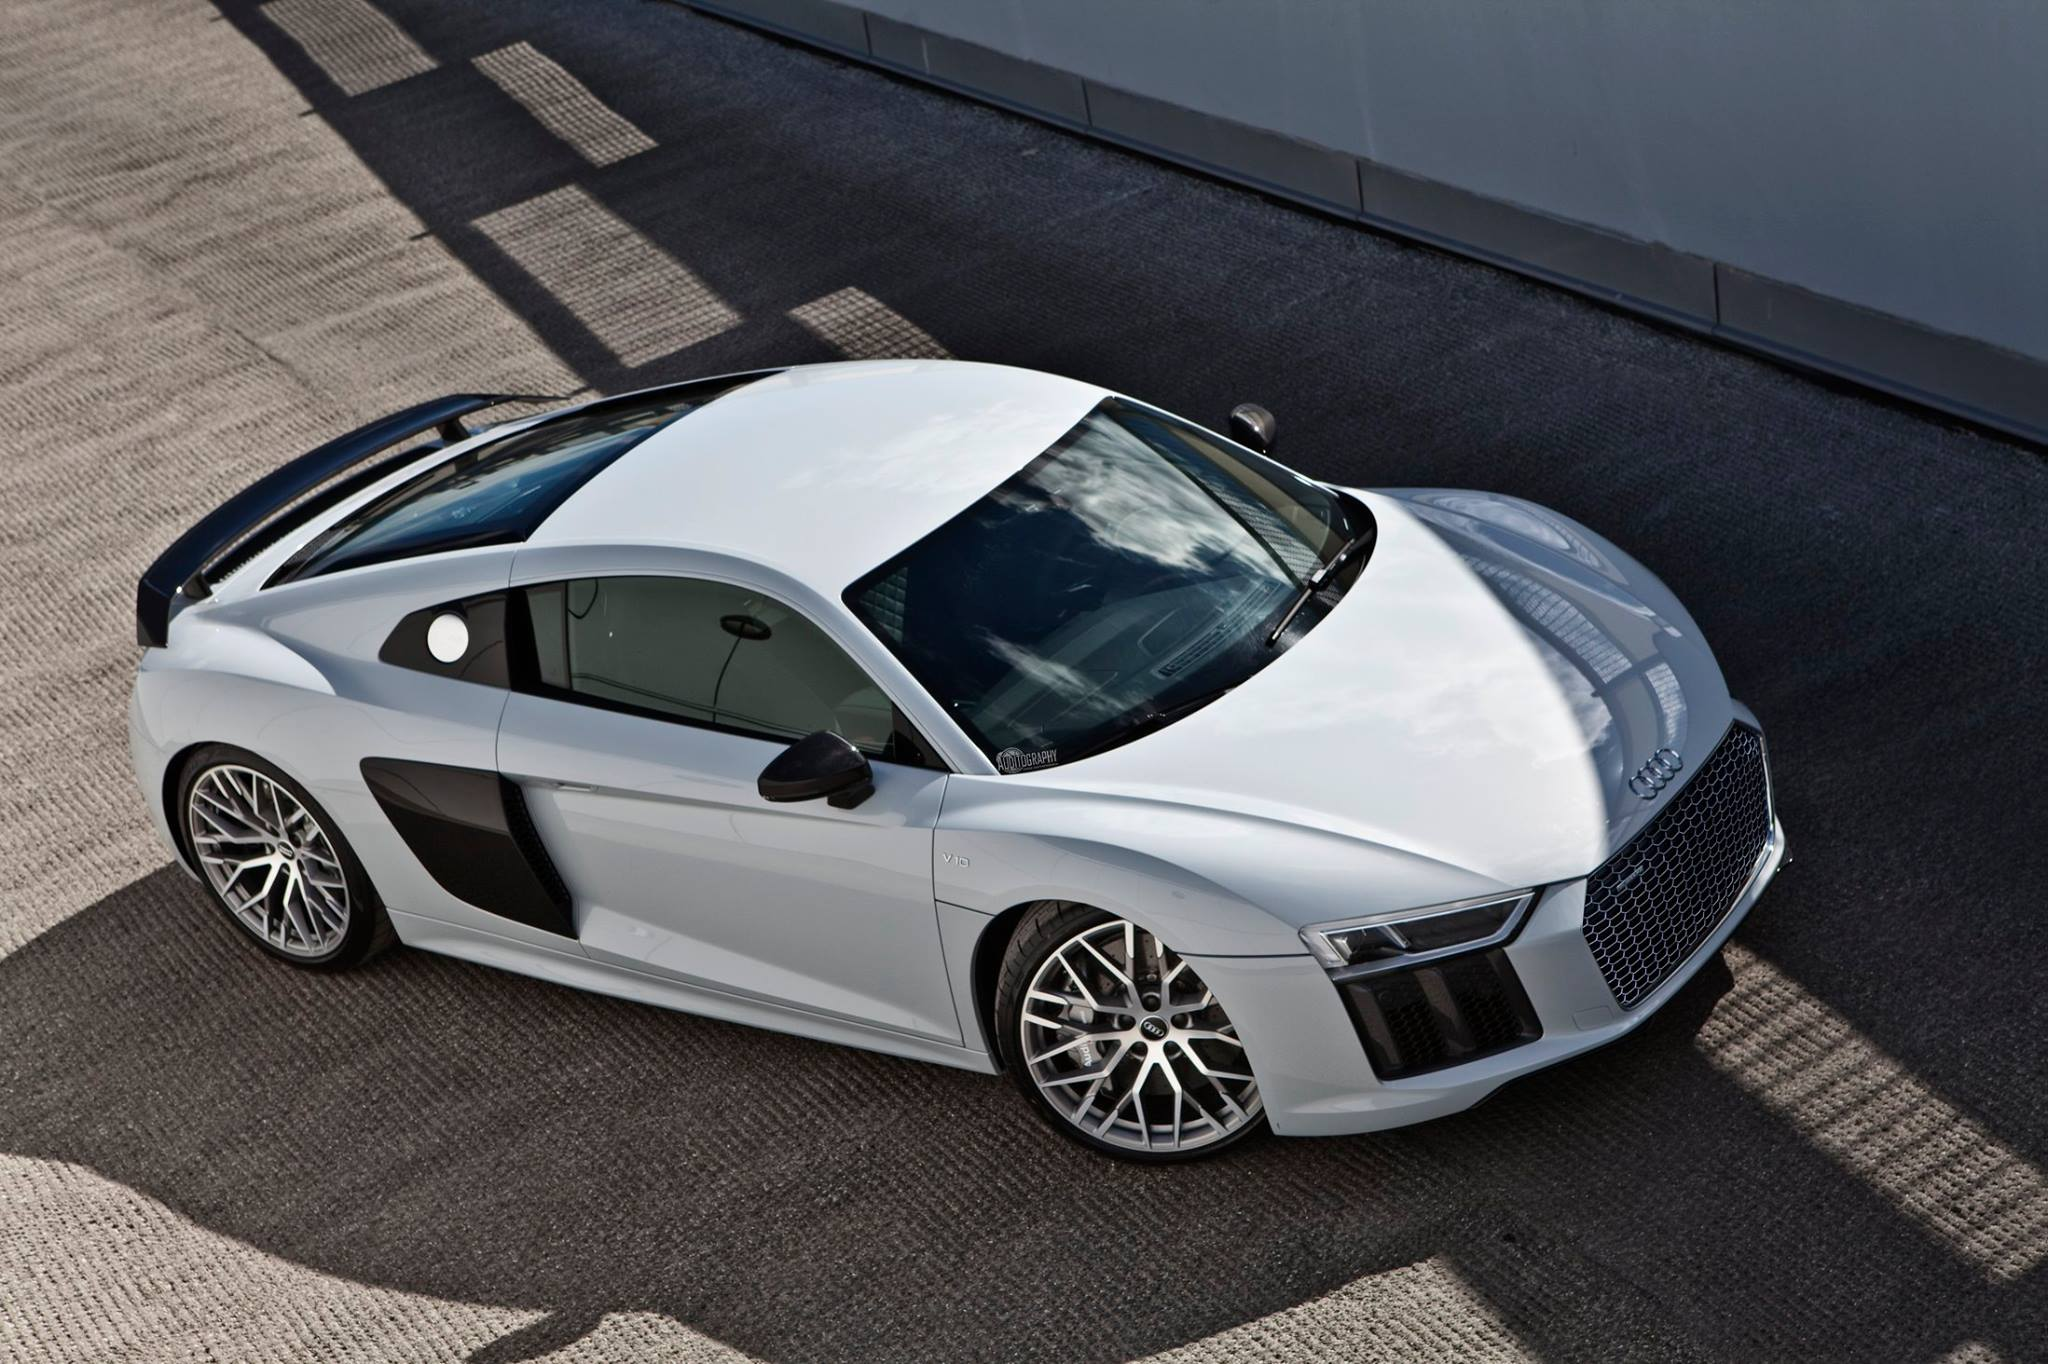 Gallery: Stunning Suzuka Grey Metallic 2017 Audi R8 V10 Plus - GTspirit